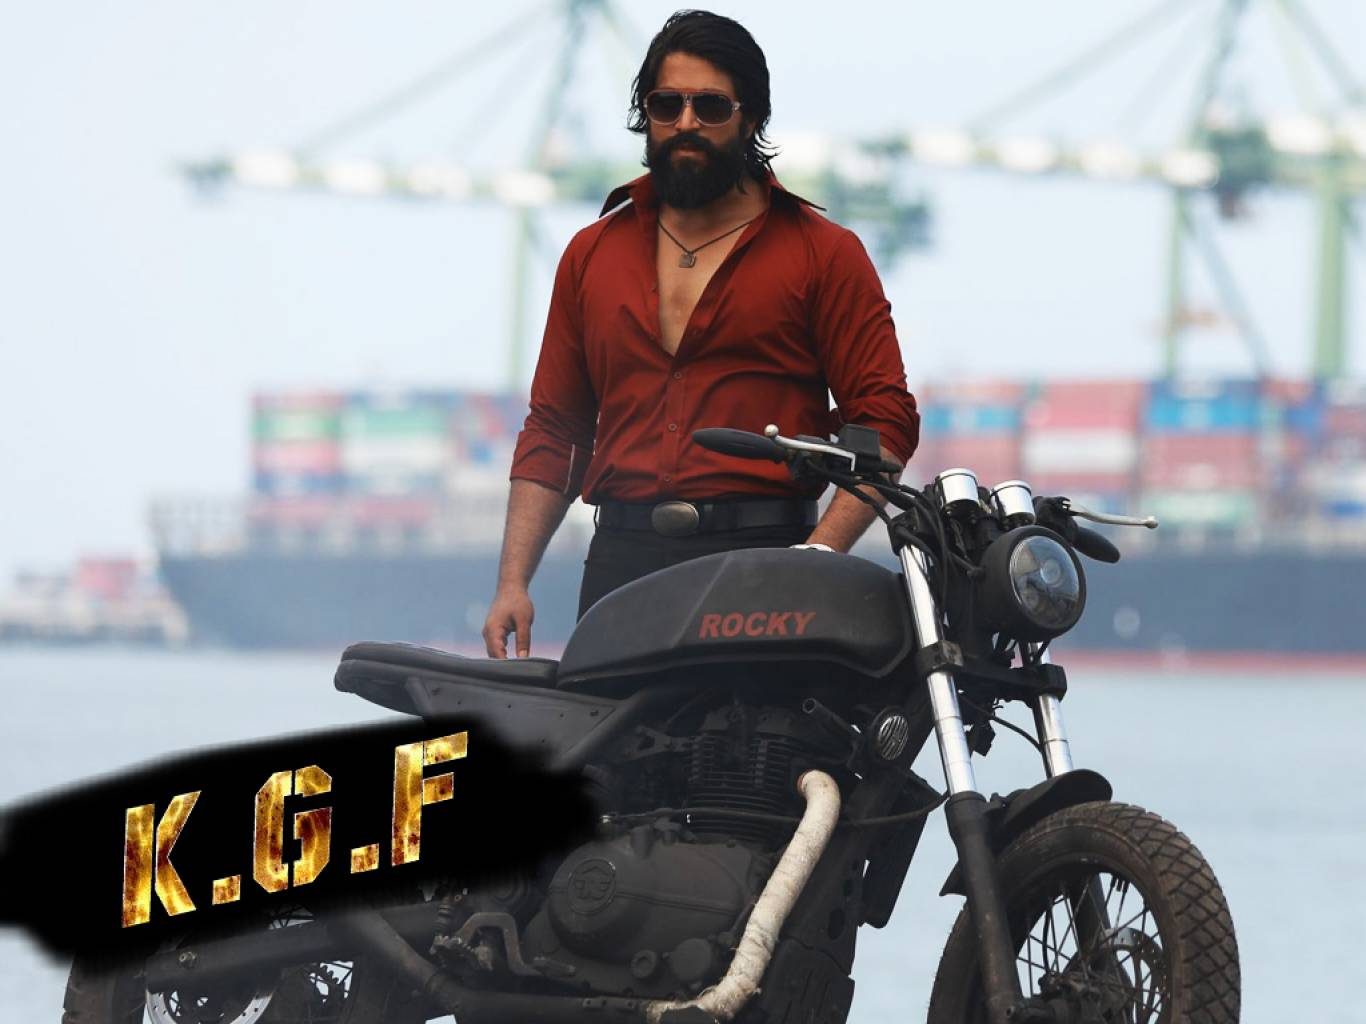 Kgf Movie Hd Wallpapers Kgf Hd Movie Wallpapers Free